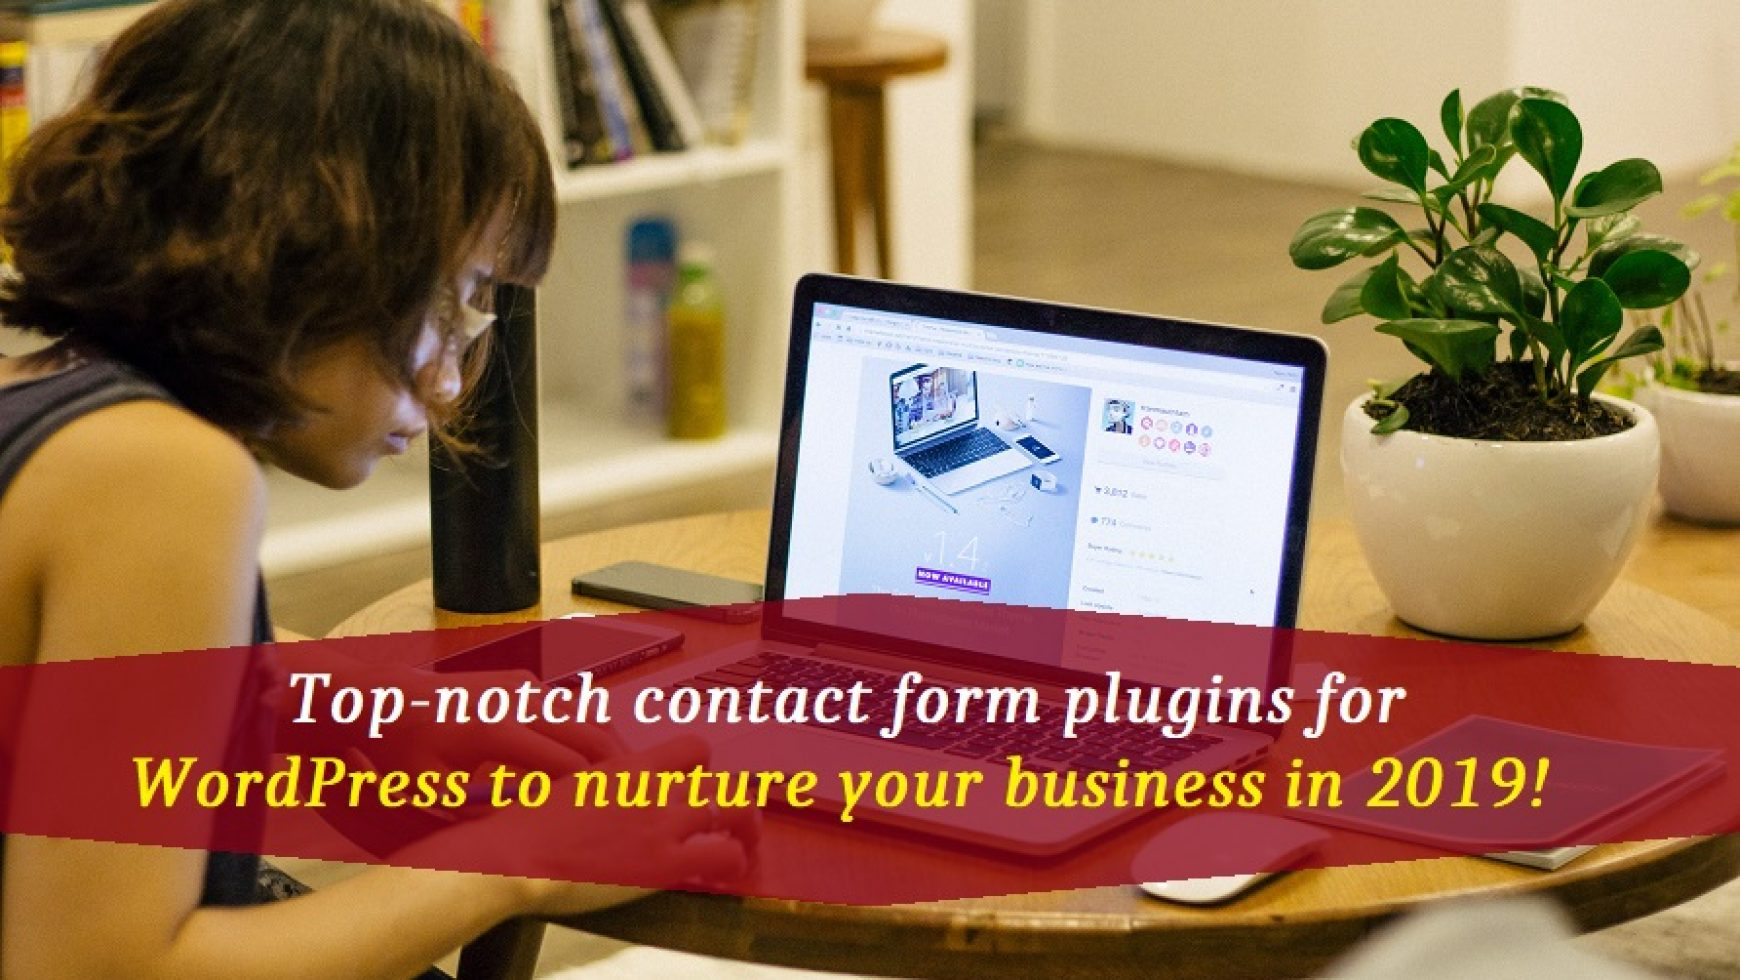 Top-notch contact form plugins for WordPress to nurture your business in 2019!